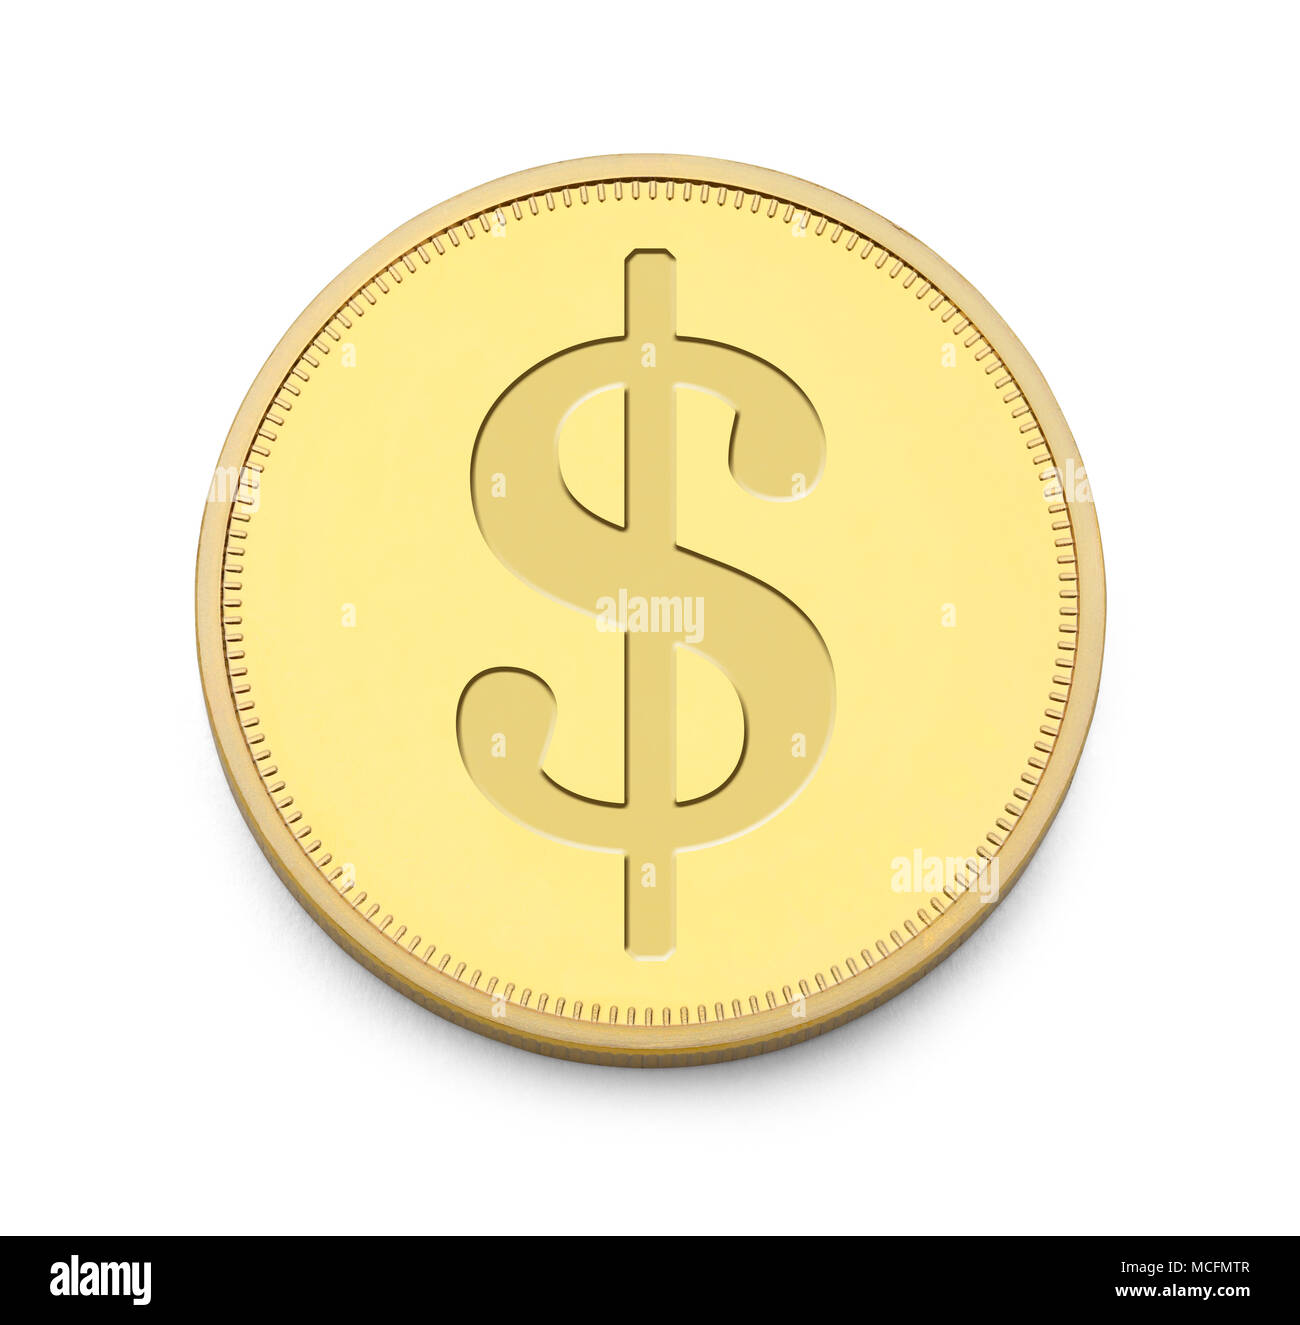 Gold Coin with Money Symbol Isolated on White Background. - Stock Image